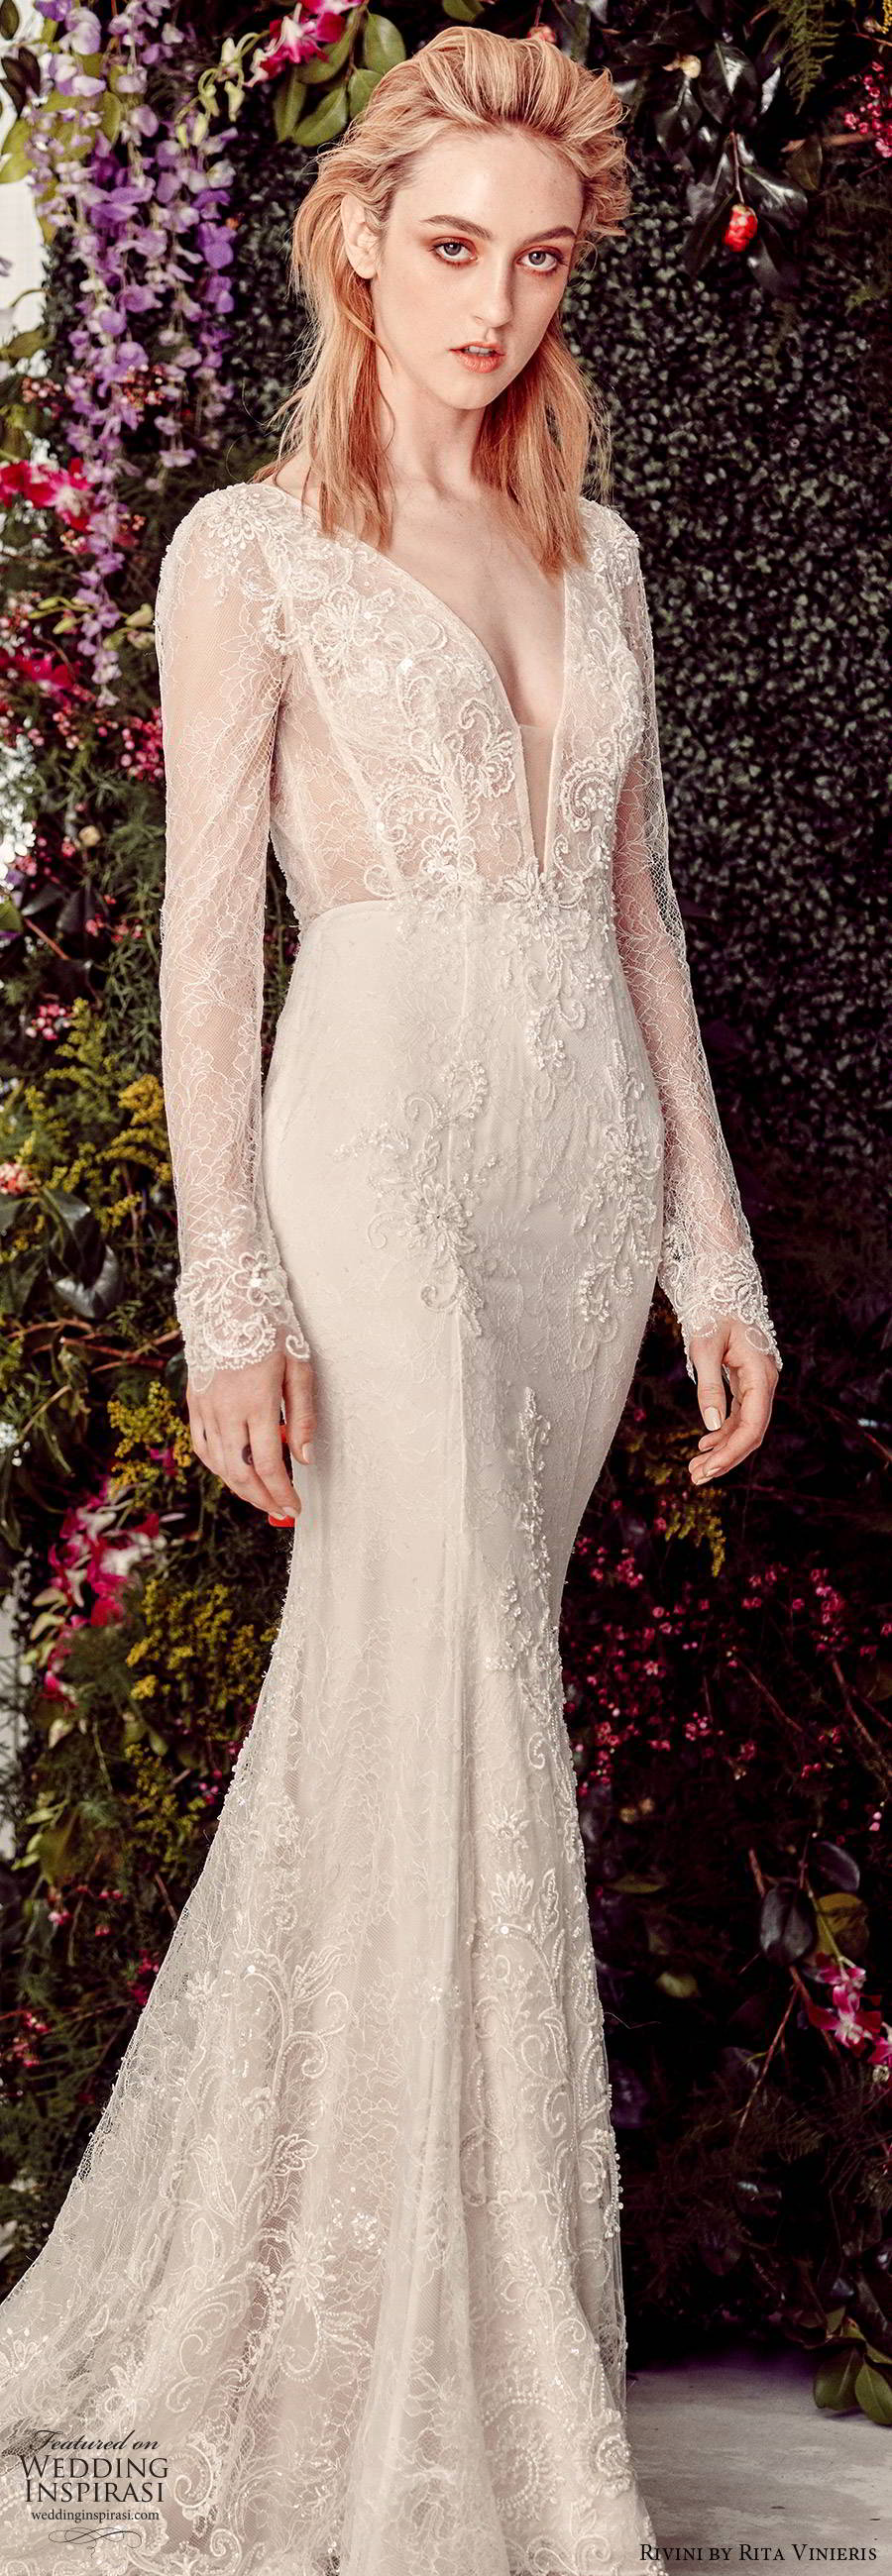 rivini by rita vinieris spring 2020 bridal illusion long sleeves plunging v neckline fully embellished lace elegant sheath fit flare wedding dress (4) lv